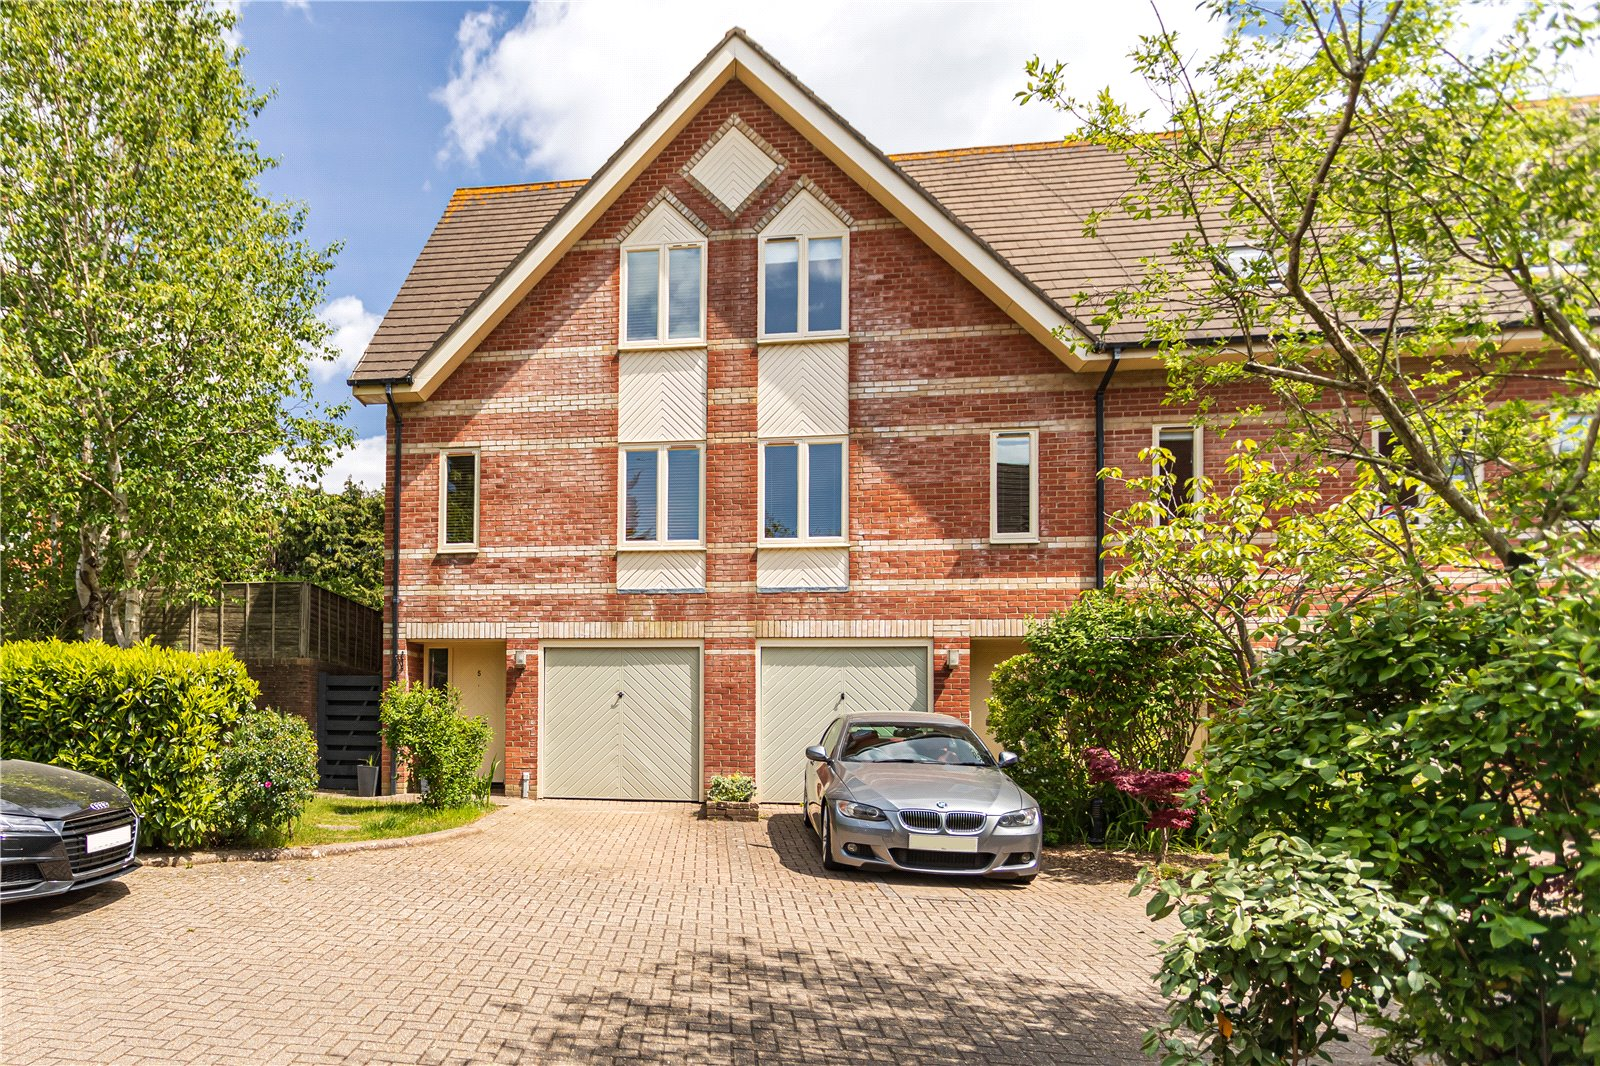 3 bed house for sale in 17 Church Road, BH14